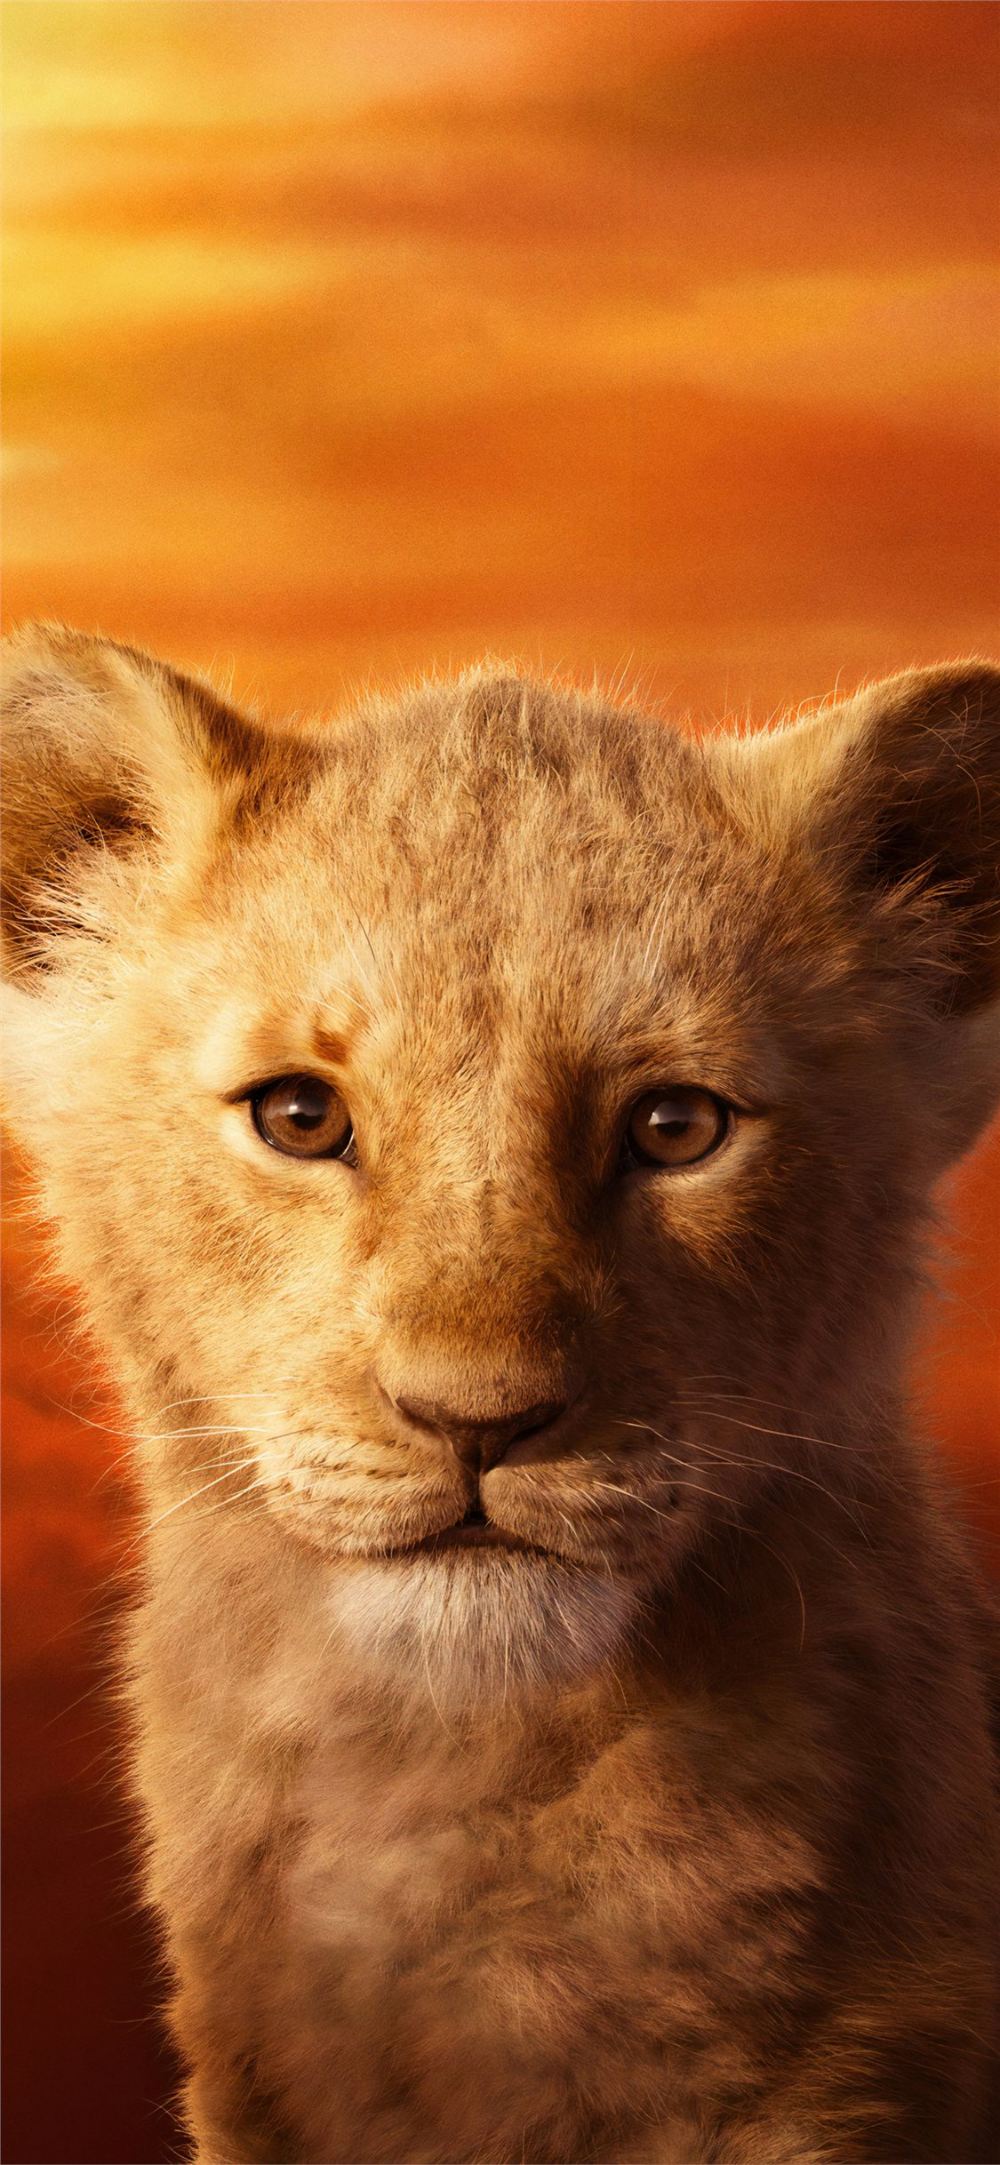 Free Download The Jd Mccrary As Simba The Lion King 2019 4k Wallpaper Beaty Your Iphone Movies Lion D Lion King Pictures Lion King Poster Lion King Movie